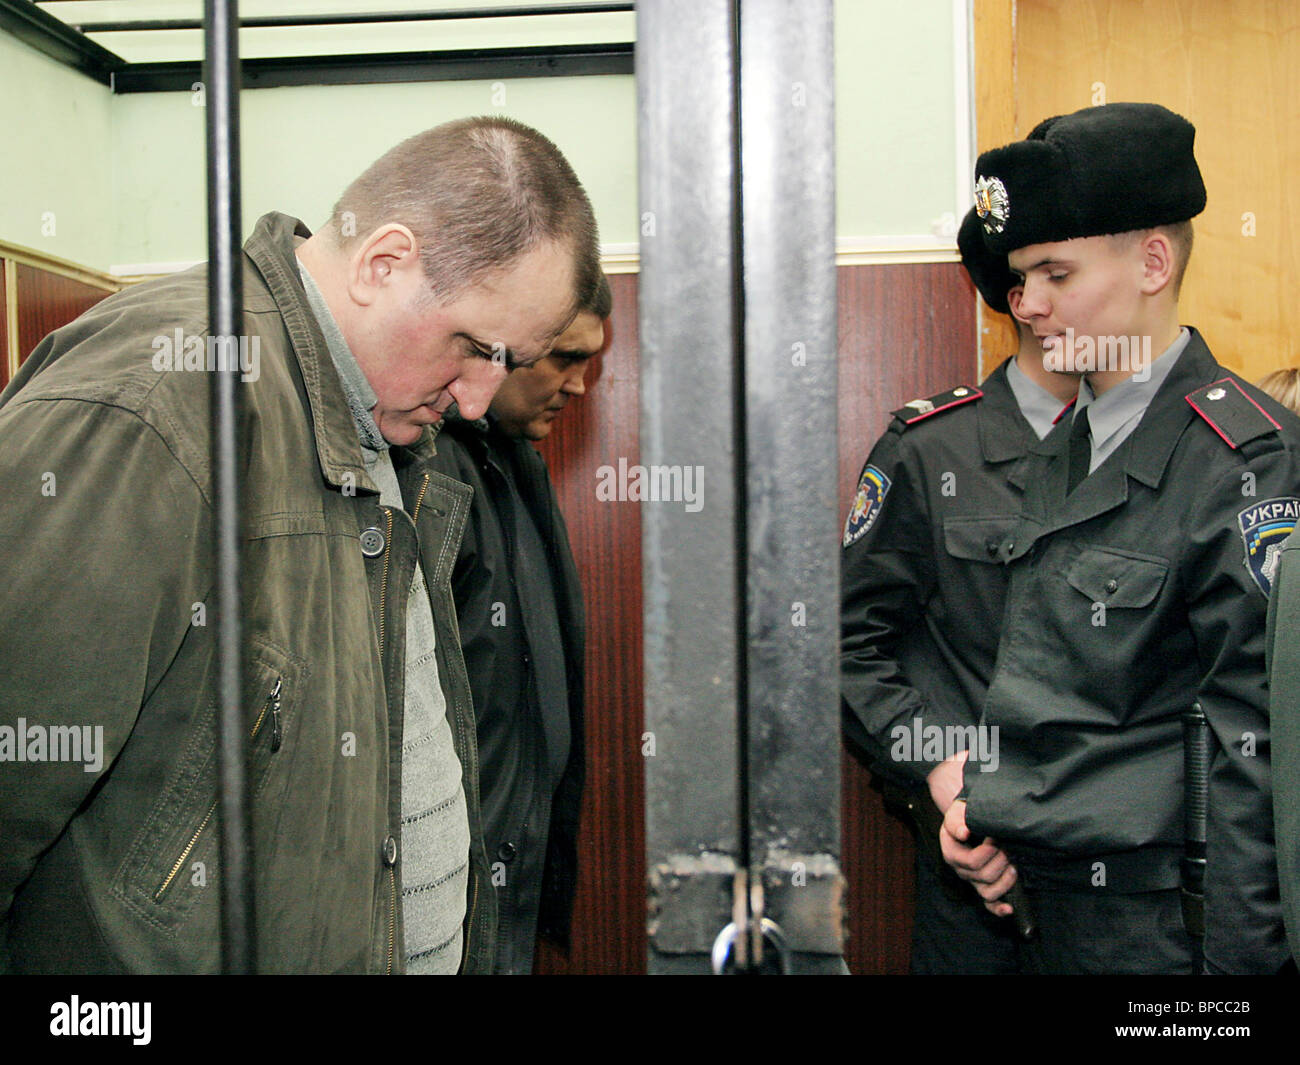 Policemen to go on trial on charges of murdering journalist Georgiy Gongadze - Stock Image